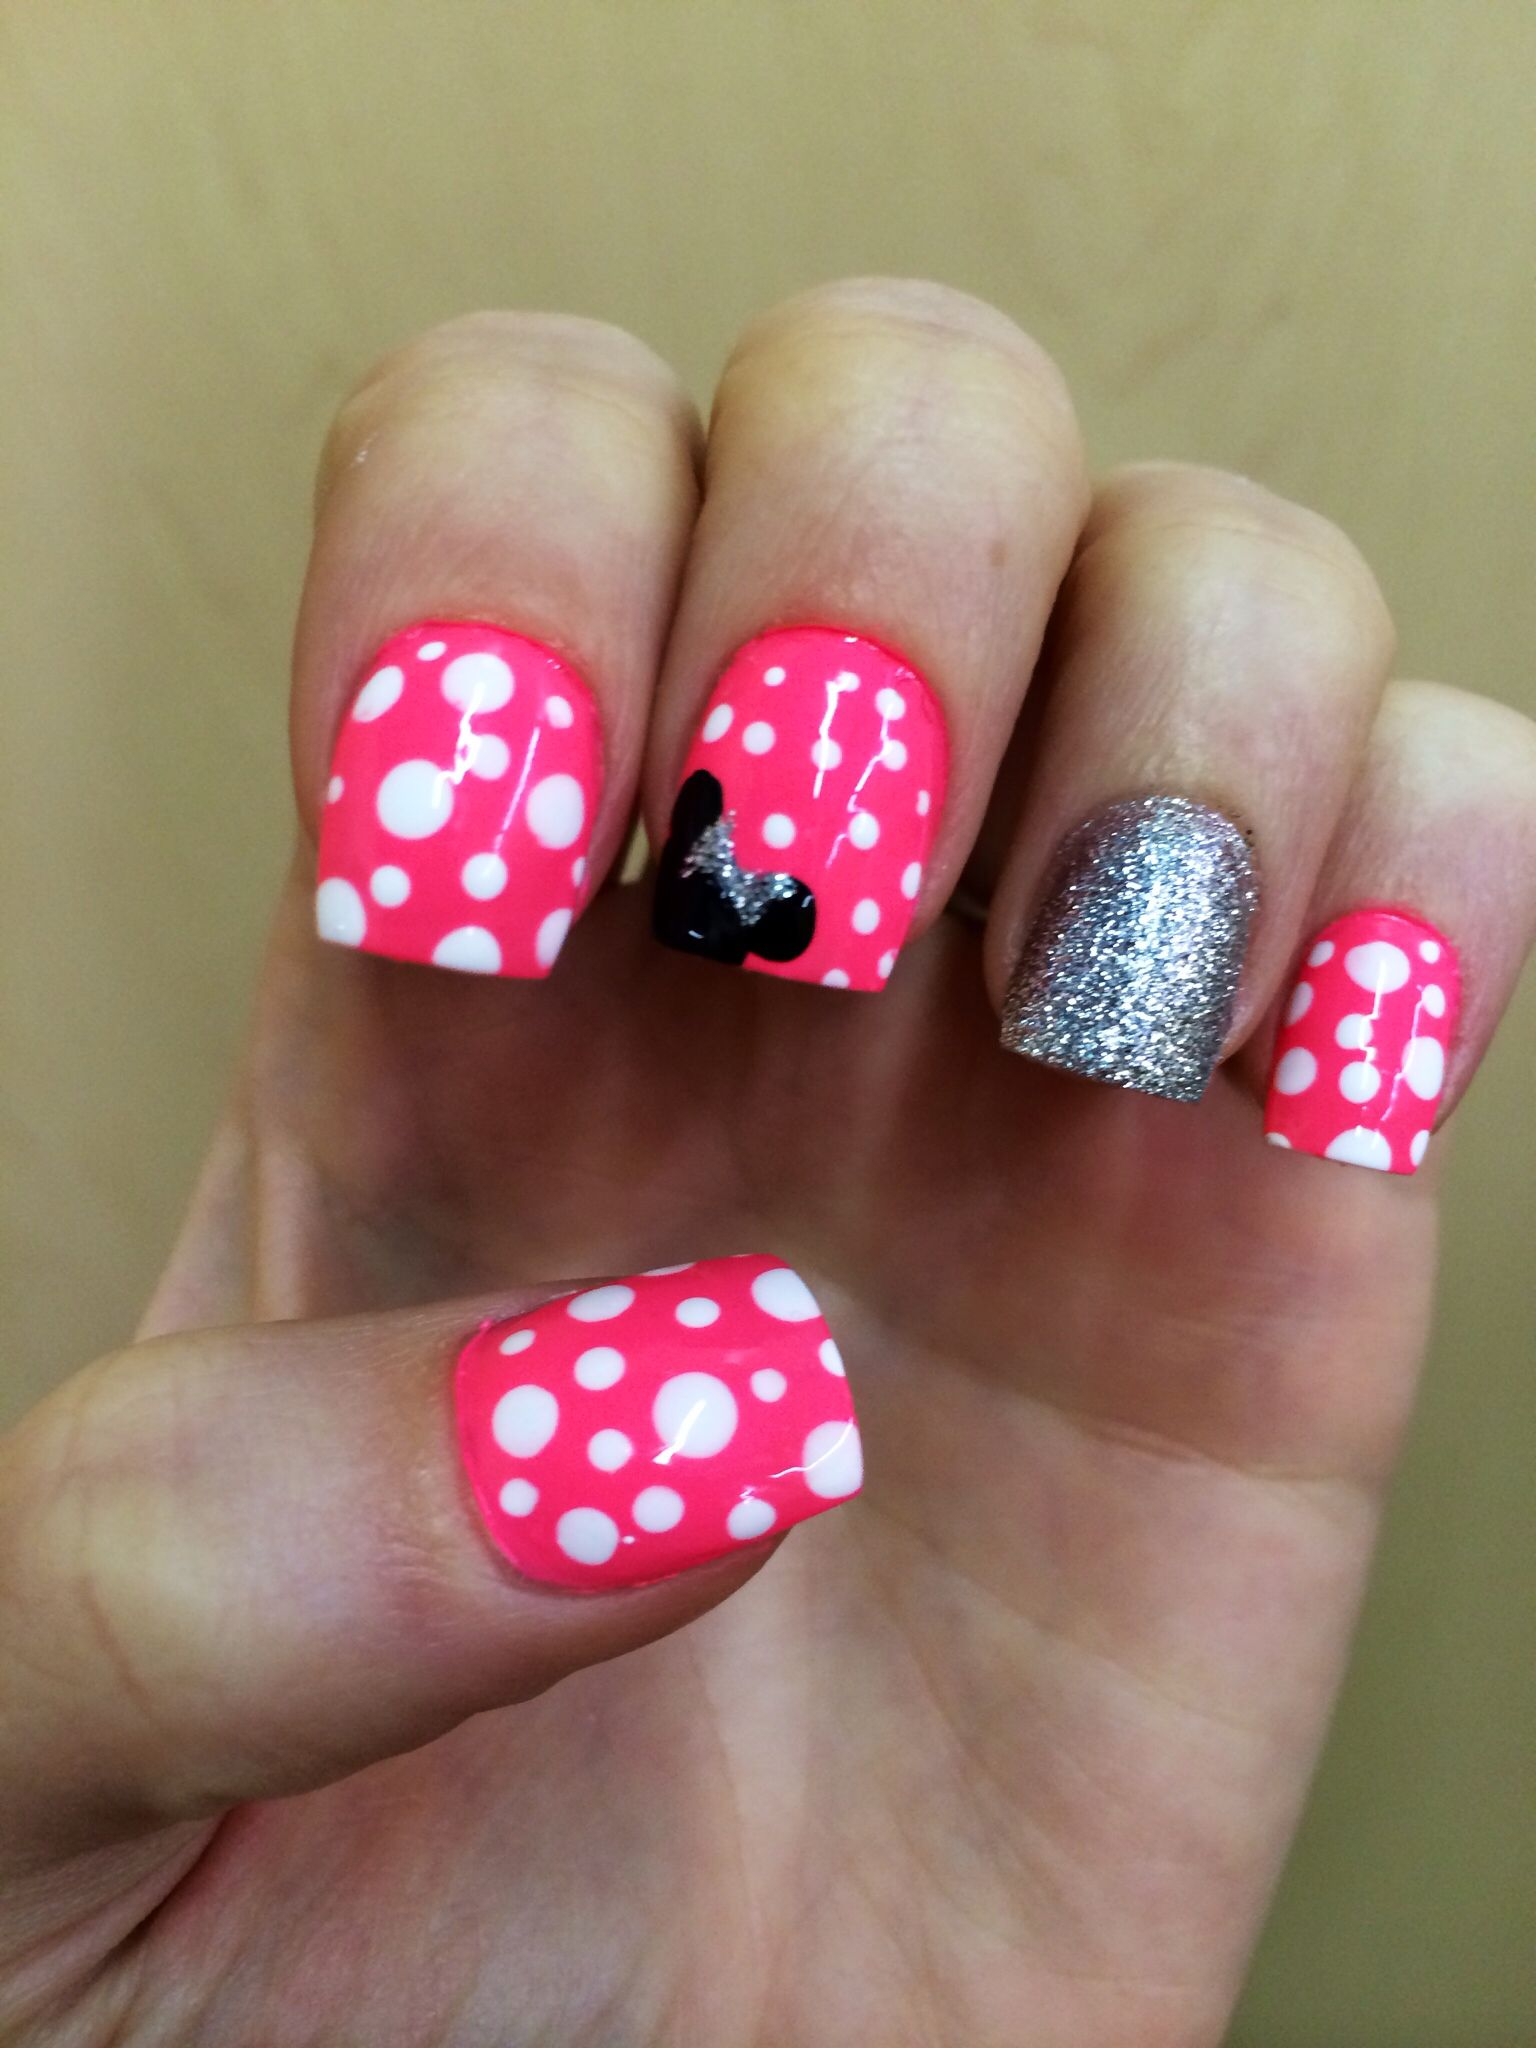 Disney Minnie Mouse Nails - Disney Minnie Mouse Nails Nails I've Had Disney Nails, Nails